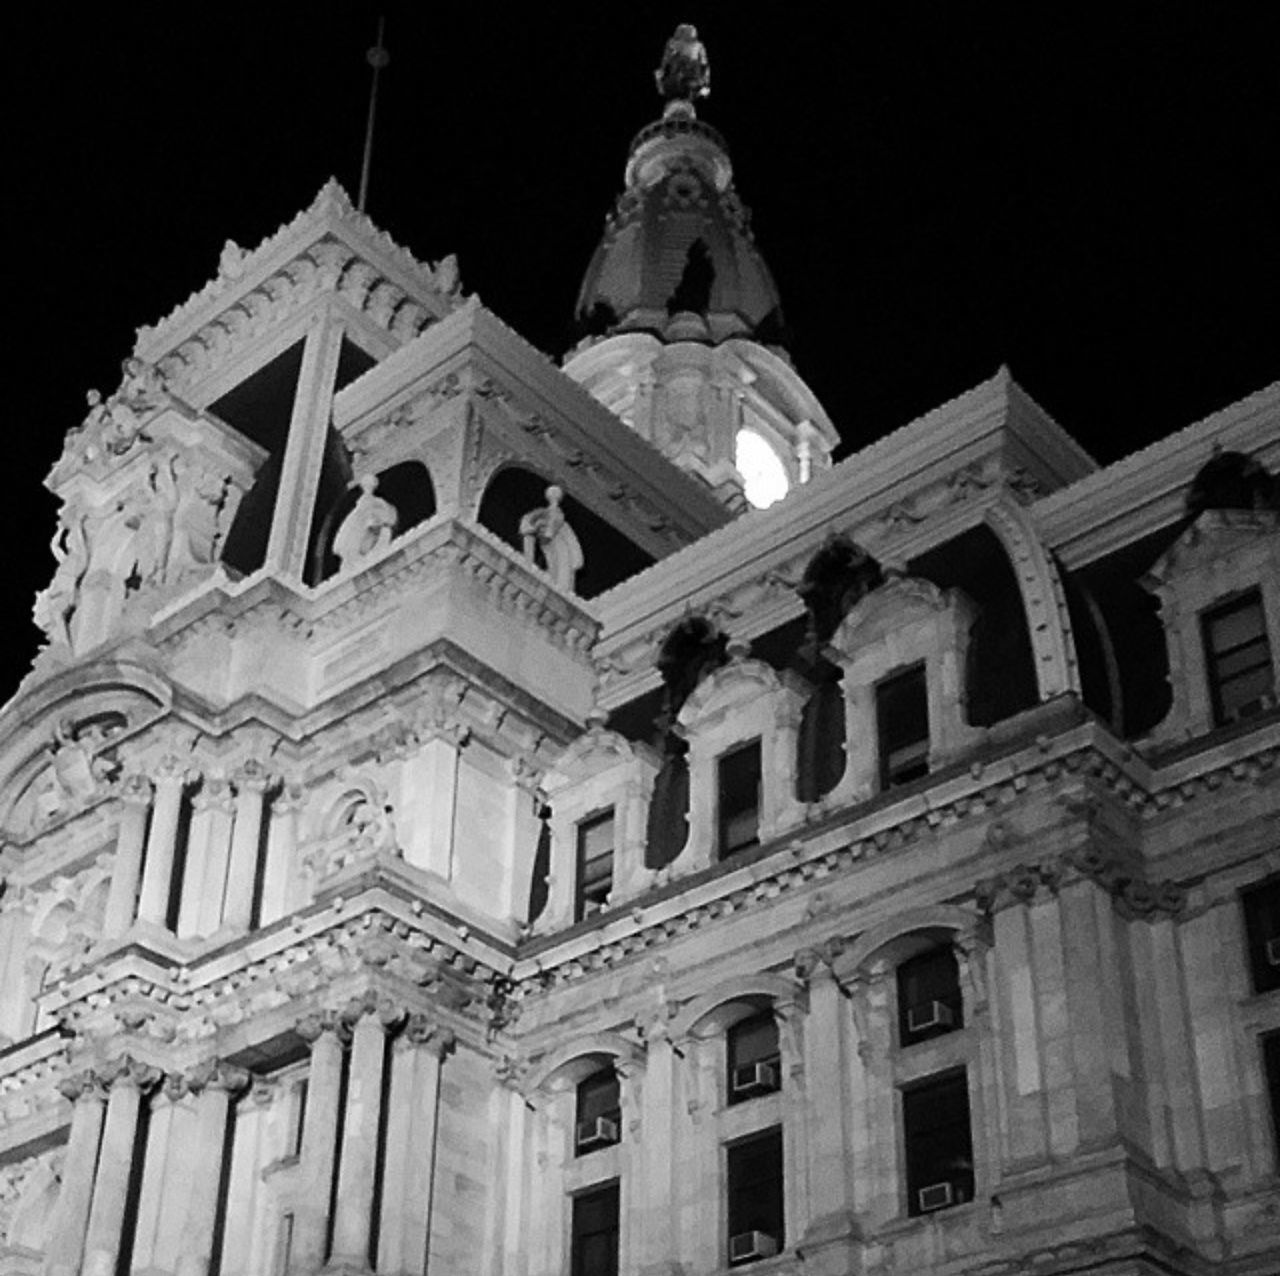 Philadelphia Philly 215 City Hall City Hall Philadelphia 🔔 Cityscape